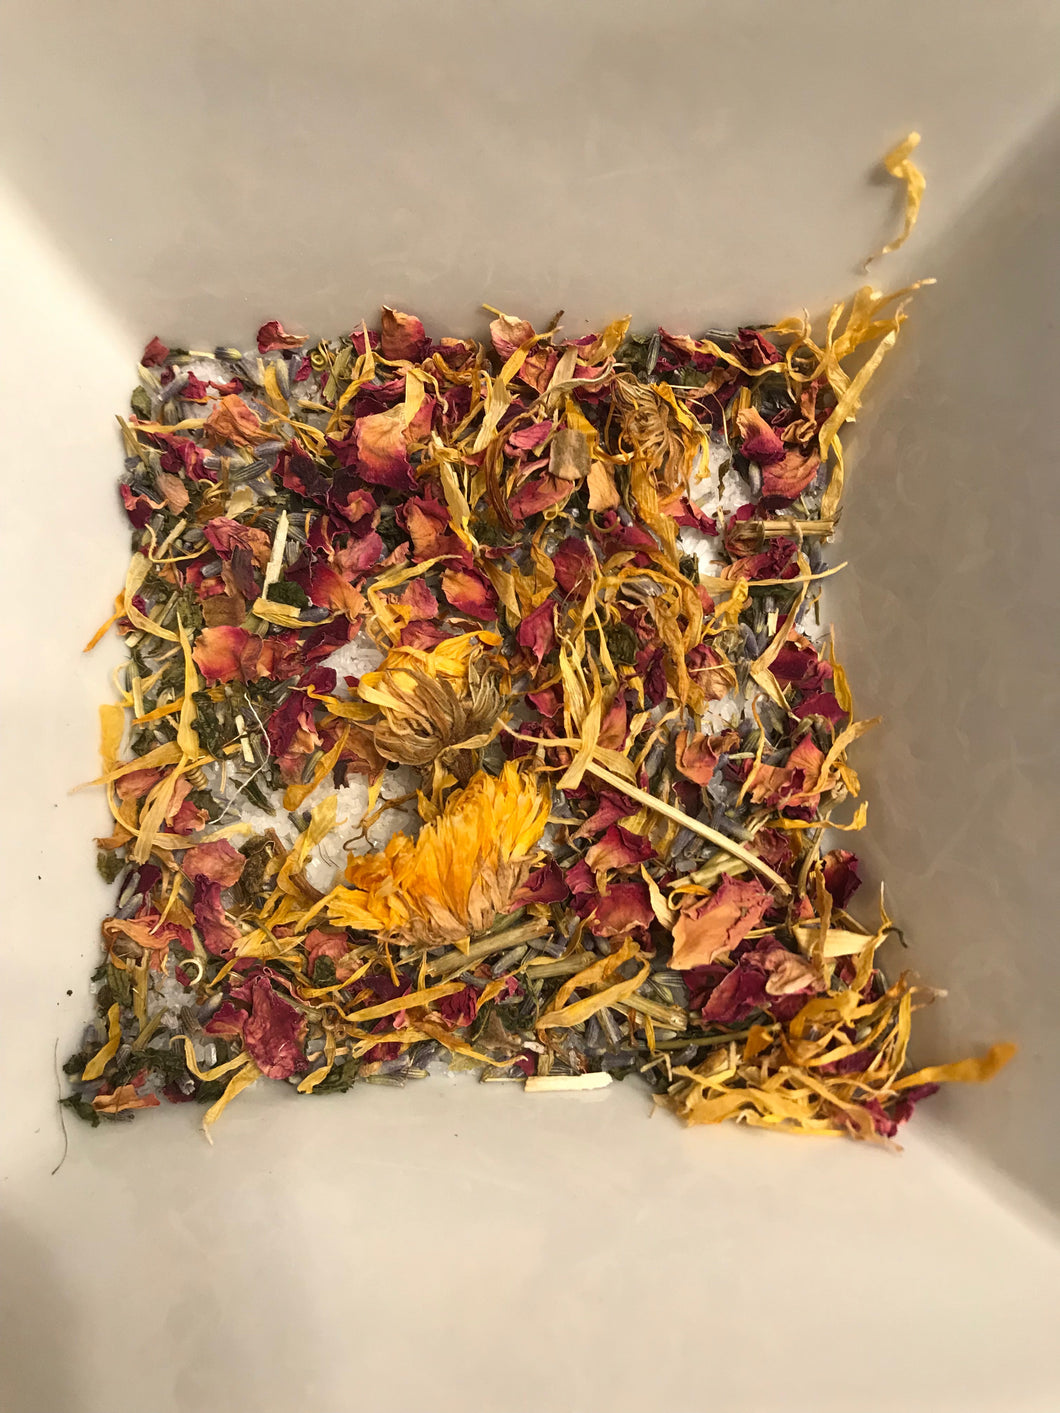 Sea Salt Herbal Bath Blend